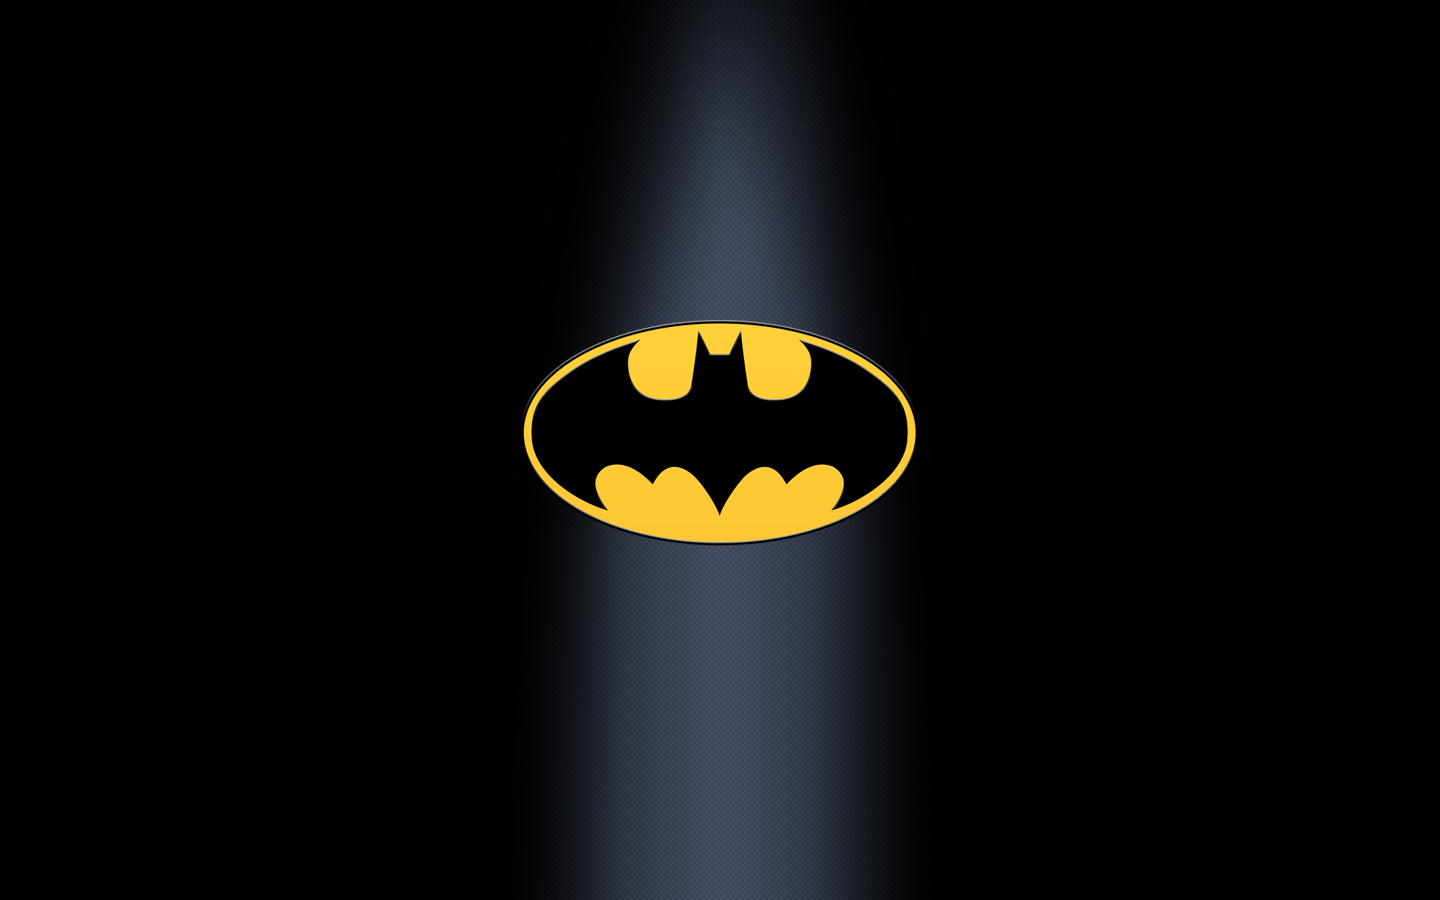 Logos For > Batman Emblem Wallpaper